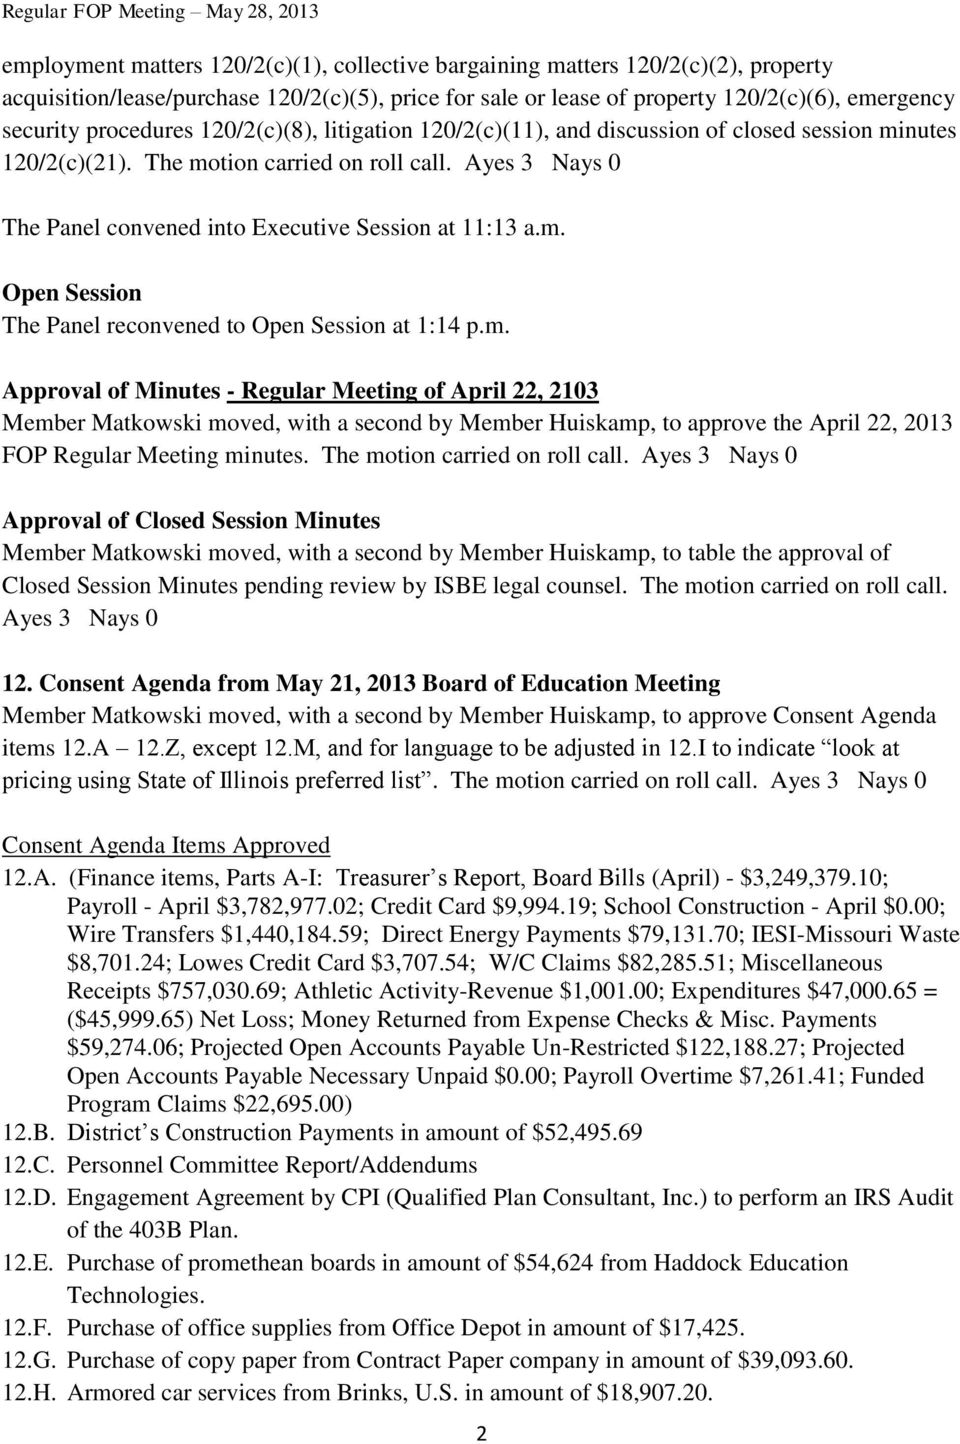 m. Approval of Minutes - Regular Meeting of April 22, 2103 Member Matkowski moved, with a second by Member Huiskamp, to approve the April 22, 2013 FOP Regular Meeting minutes.